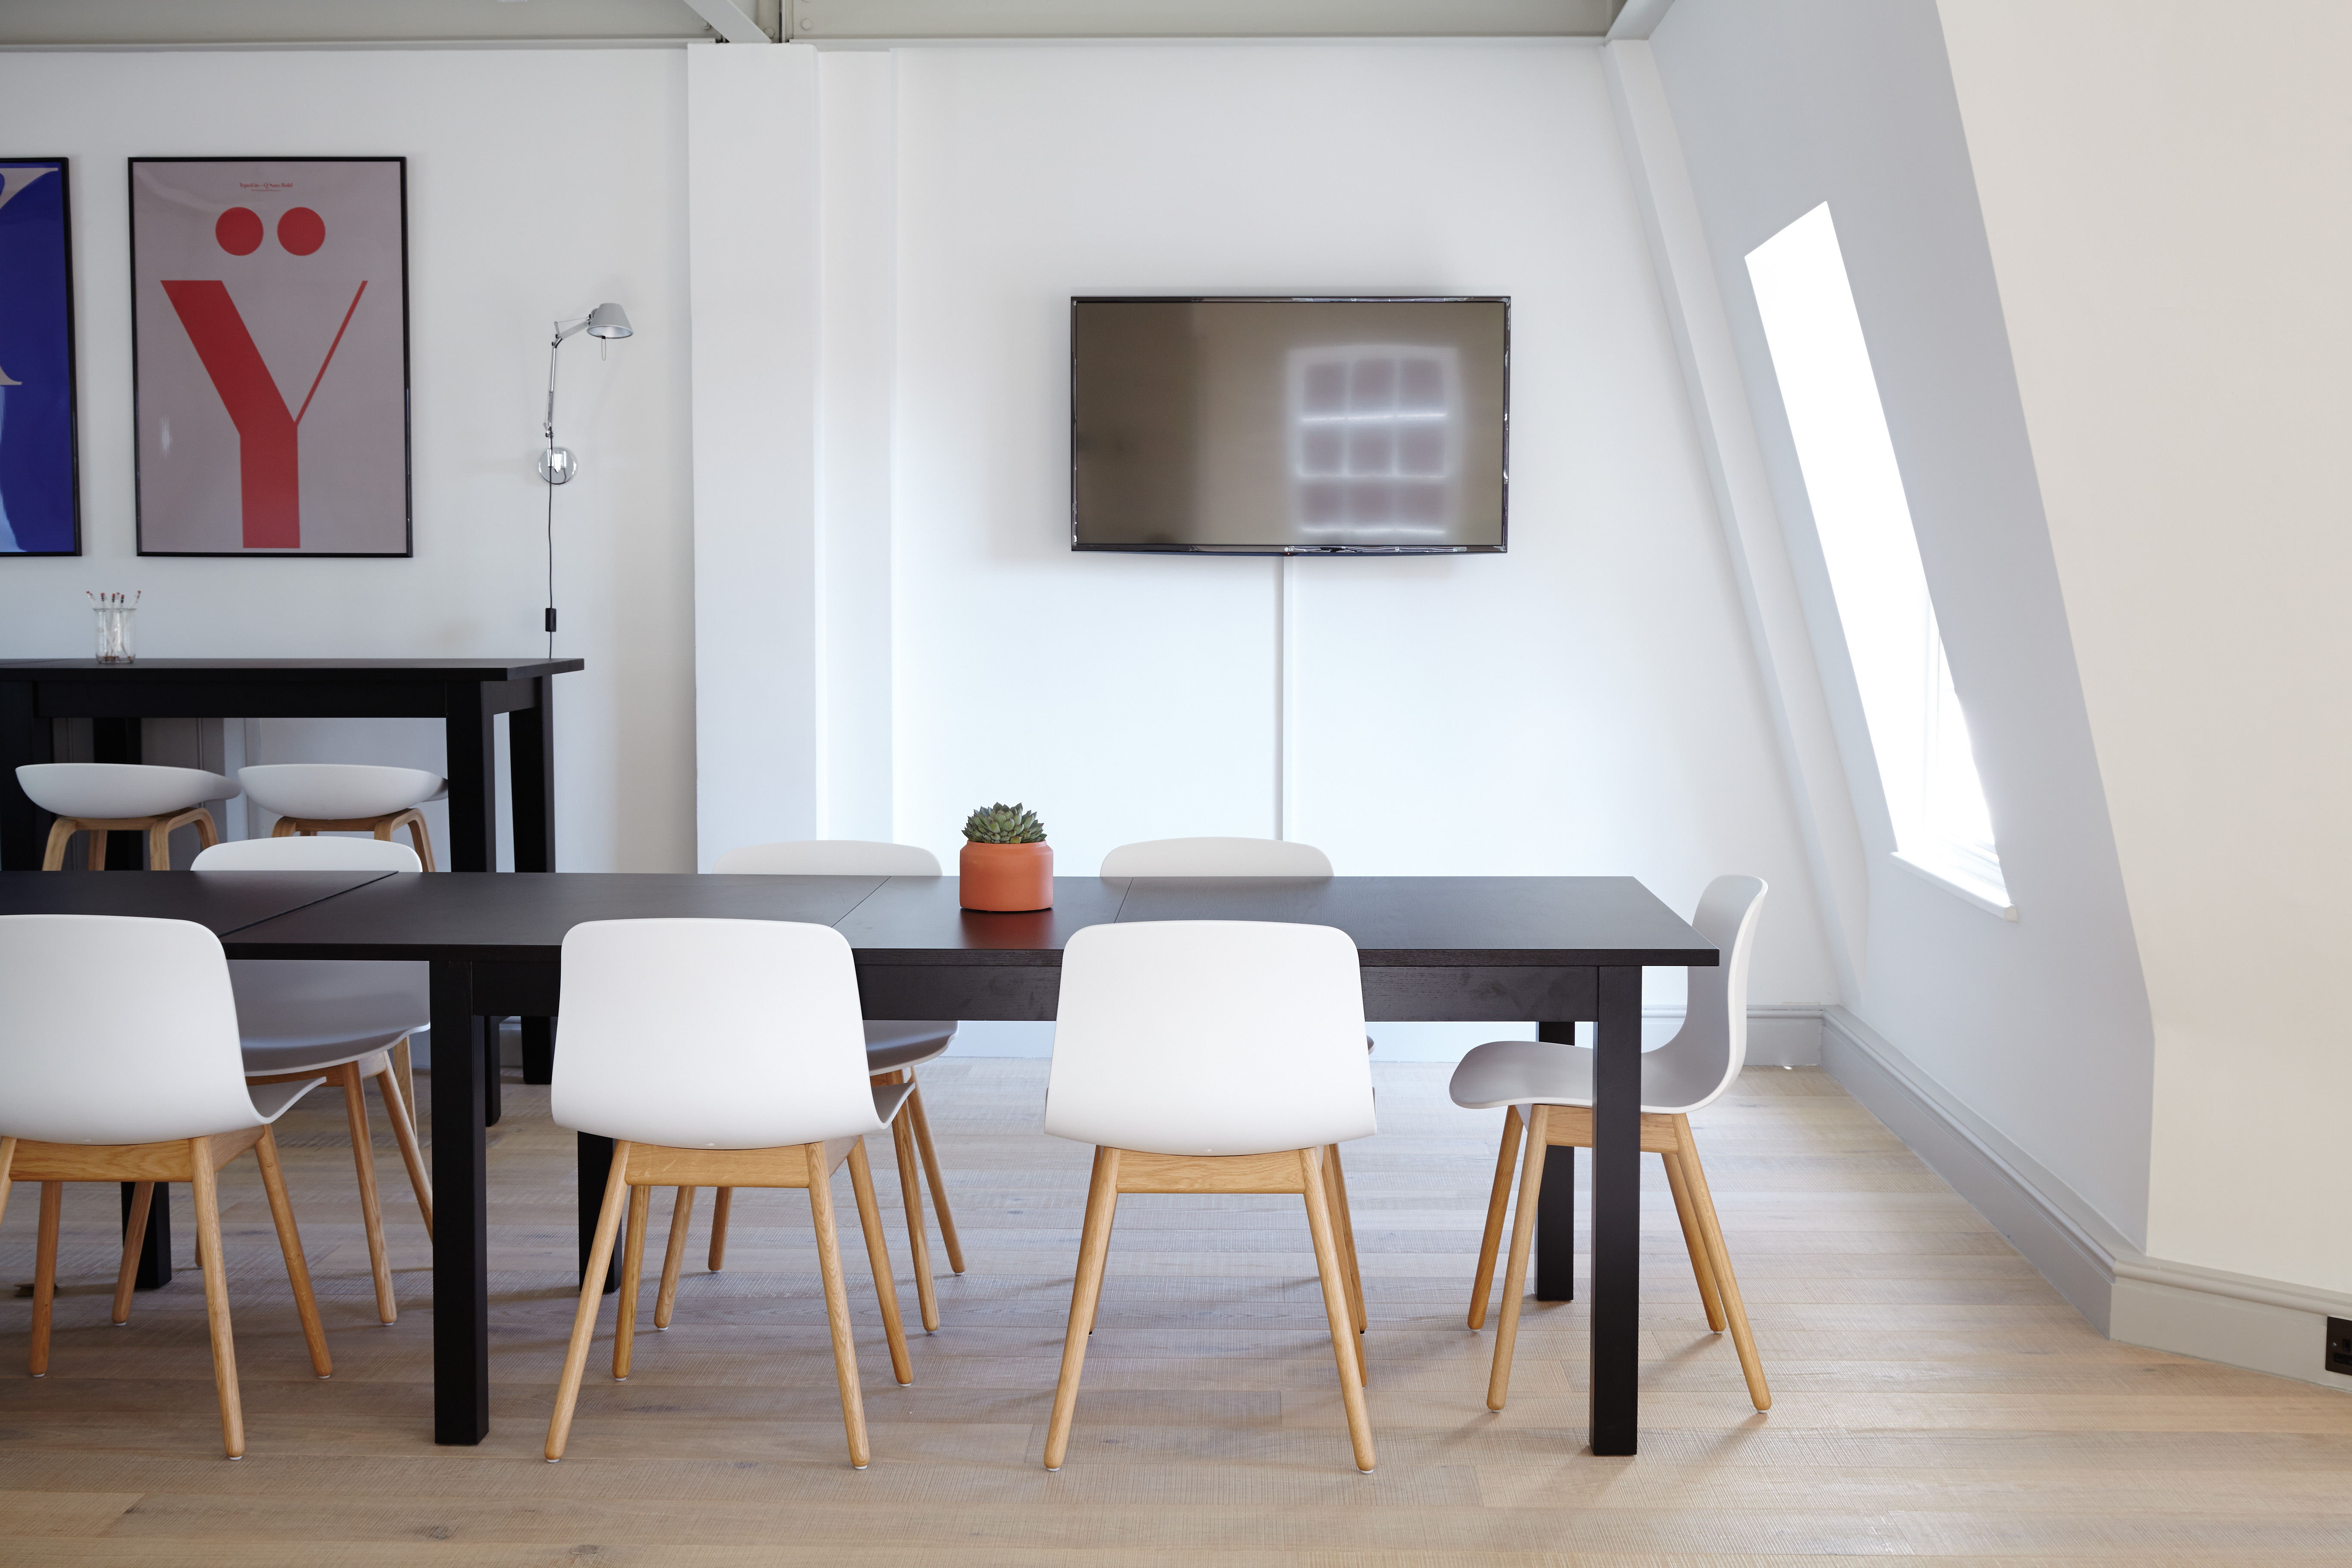 Clutter Free Space